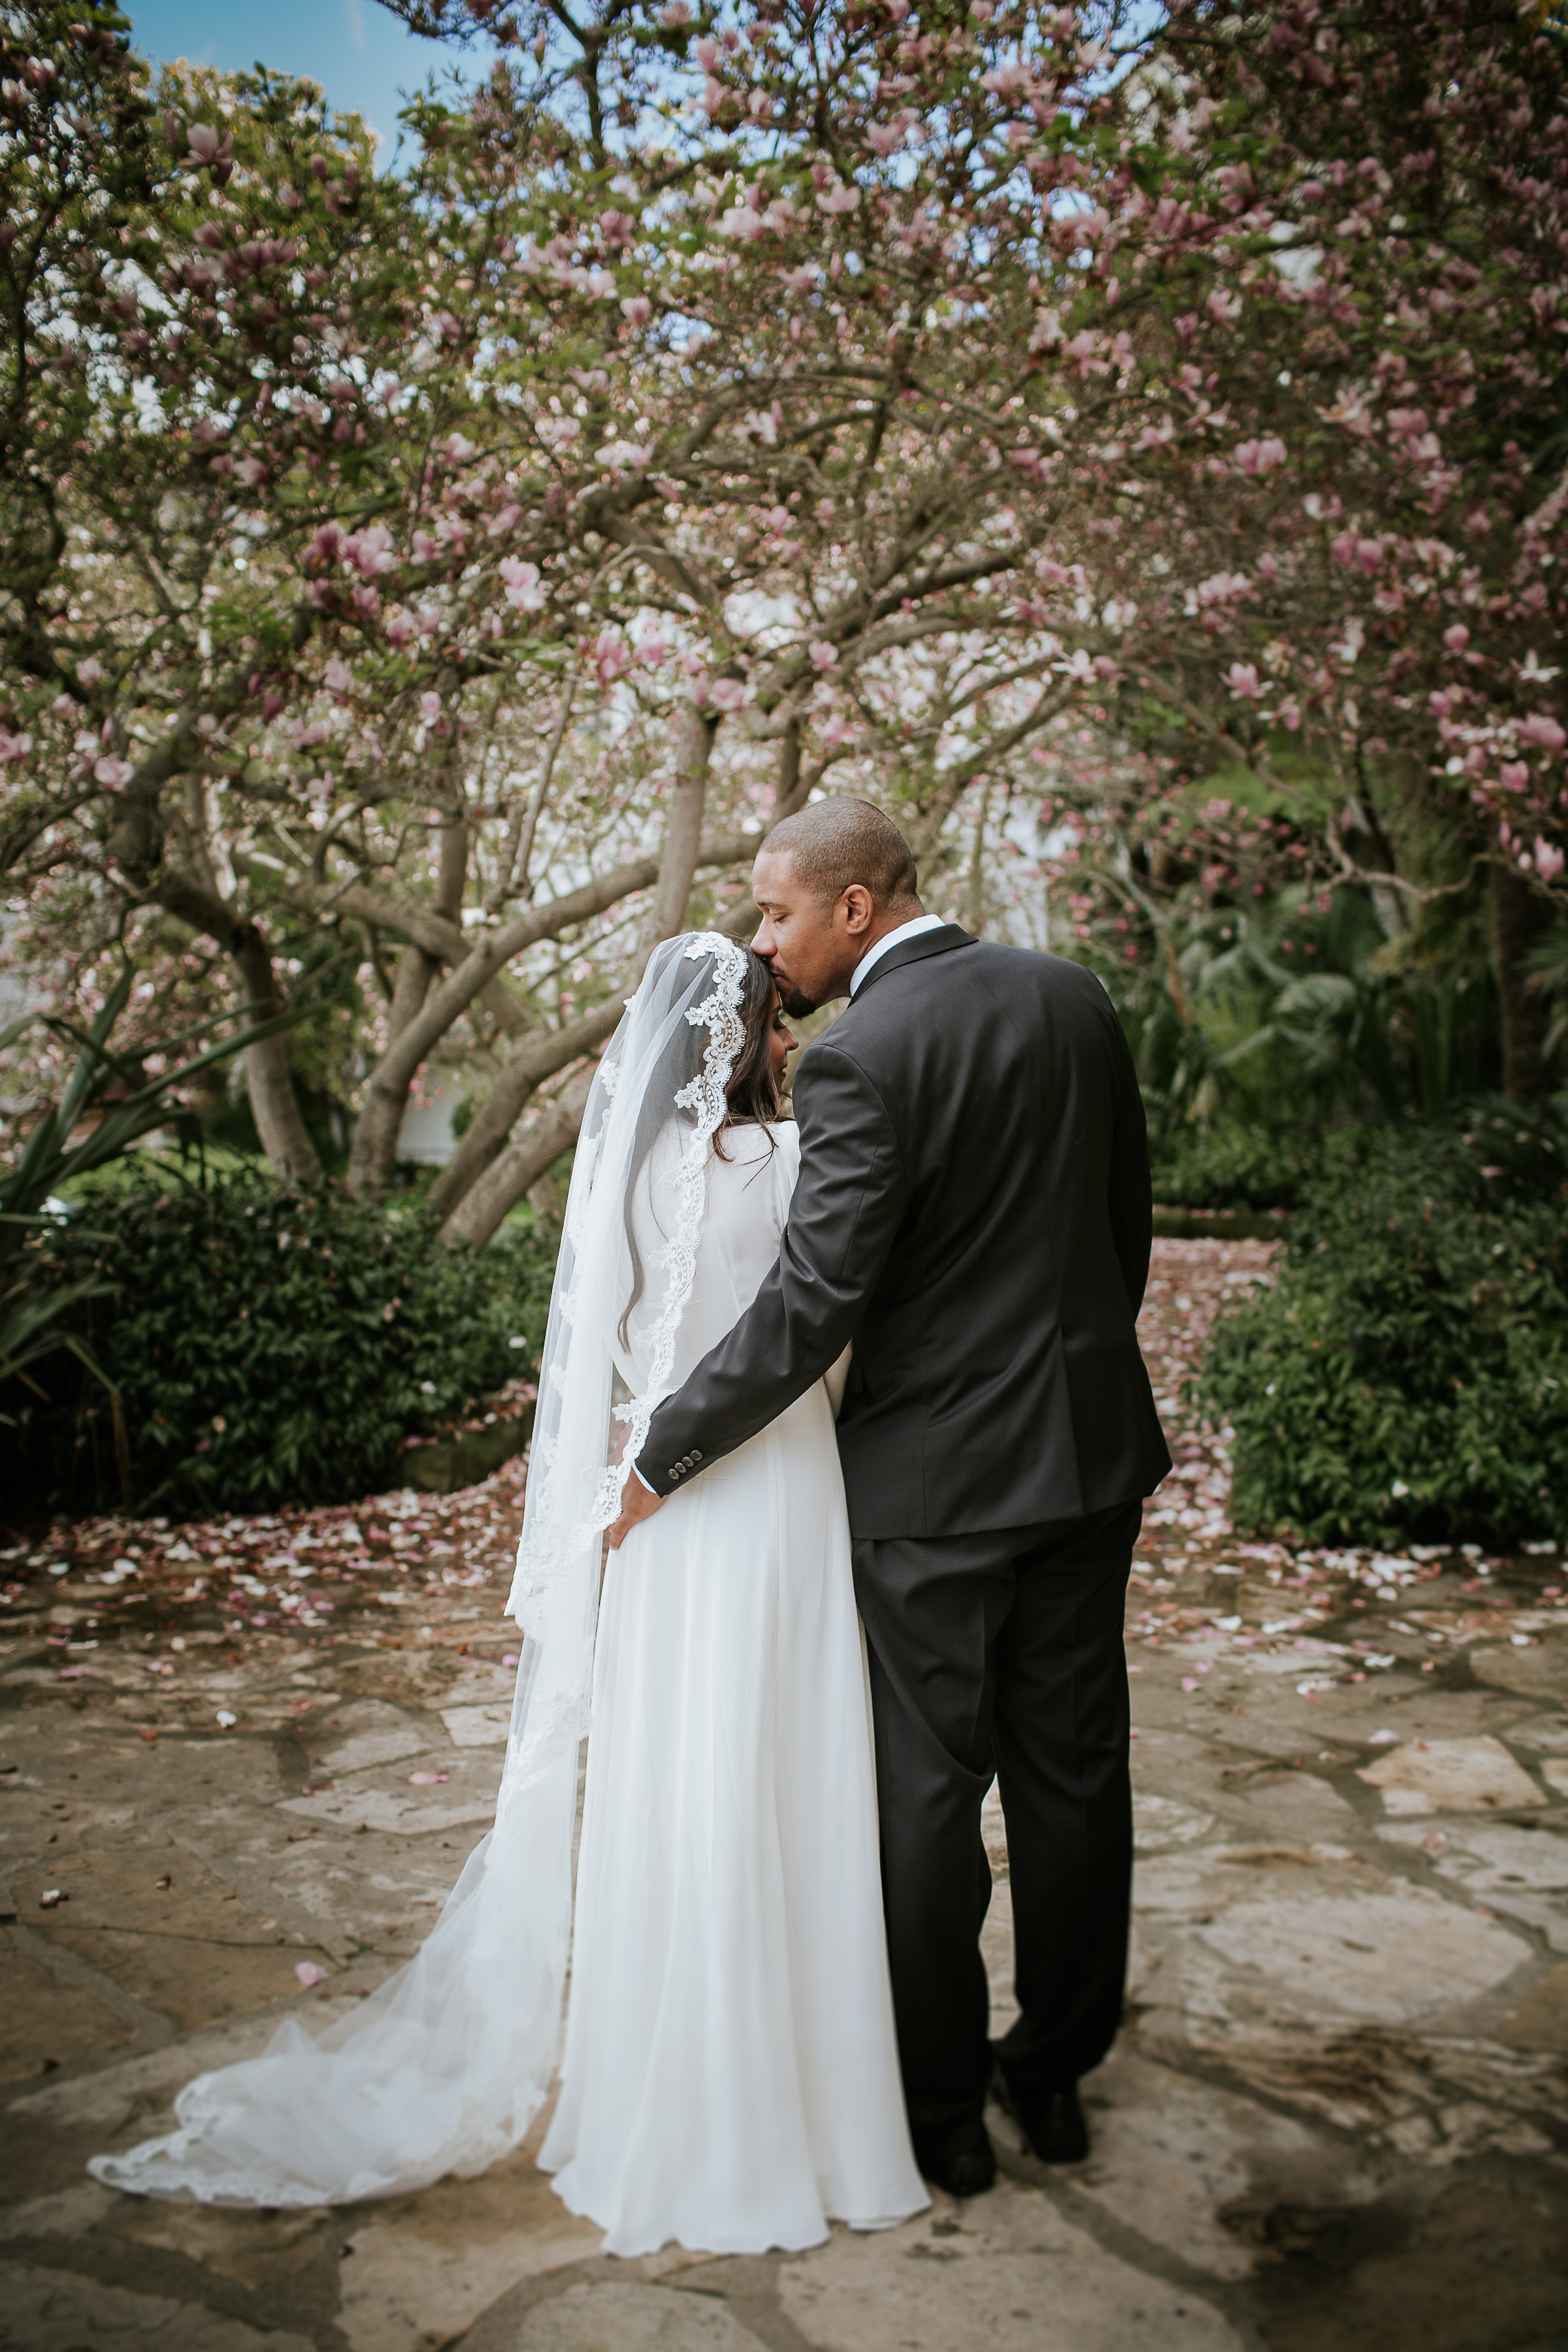 GabrielaandDeJuansantabarbaracourthouseweddingstellamaresweddingelopement-313.jpg